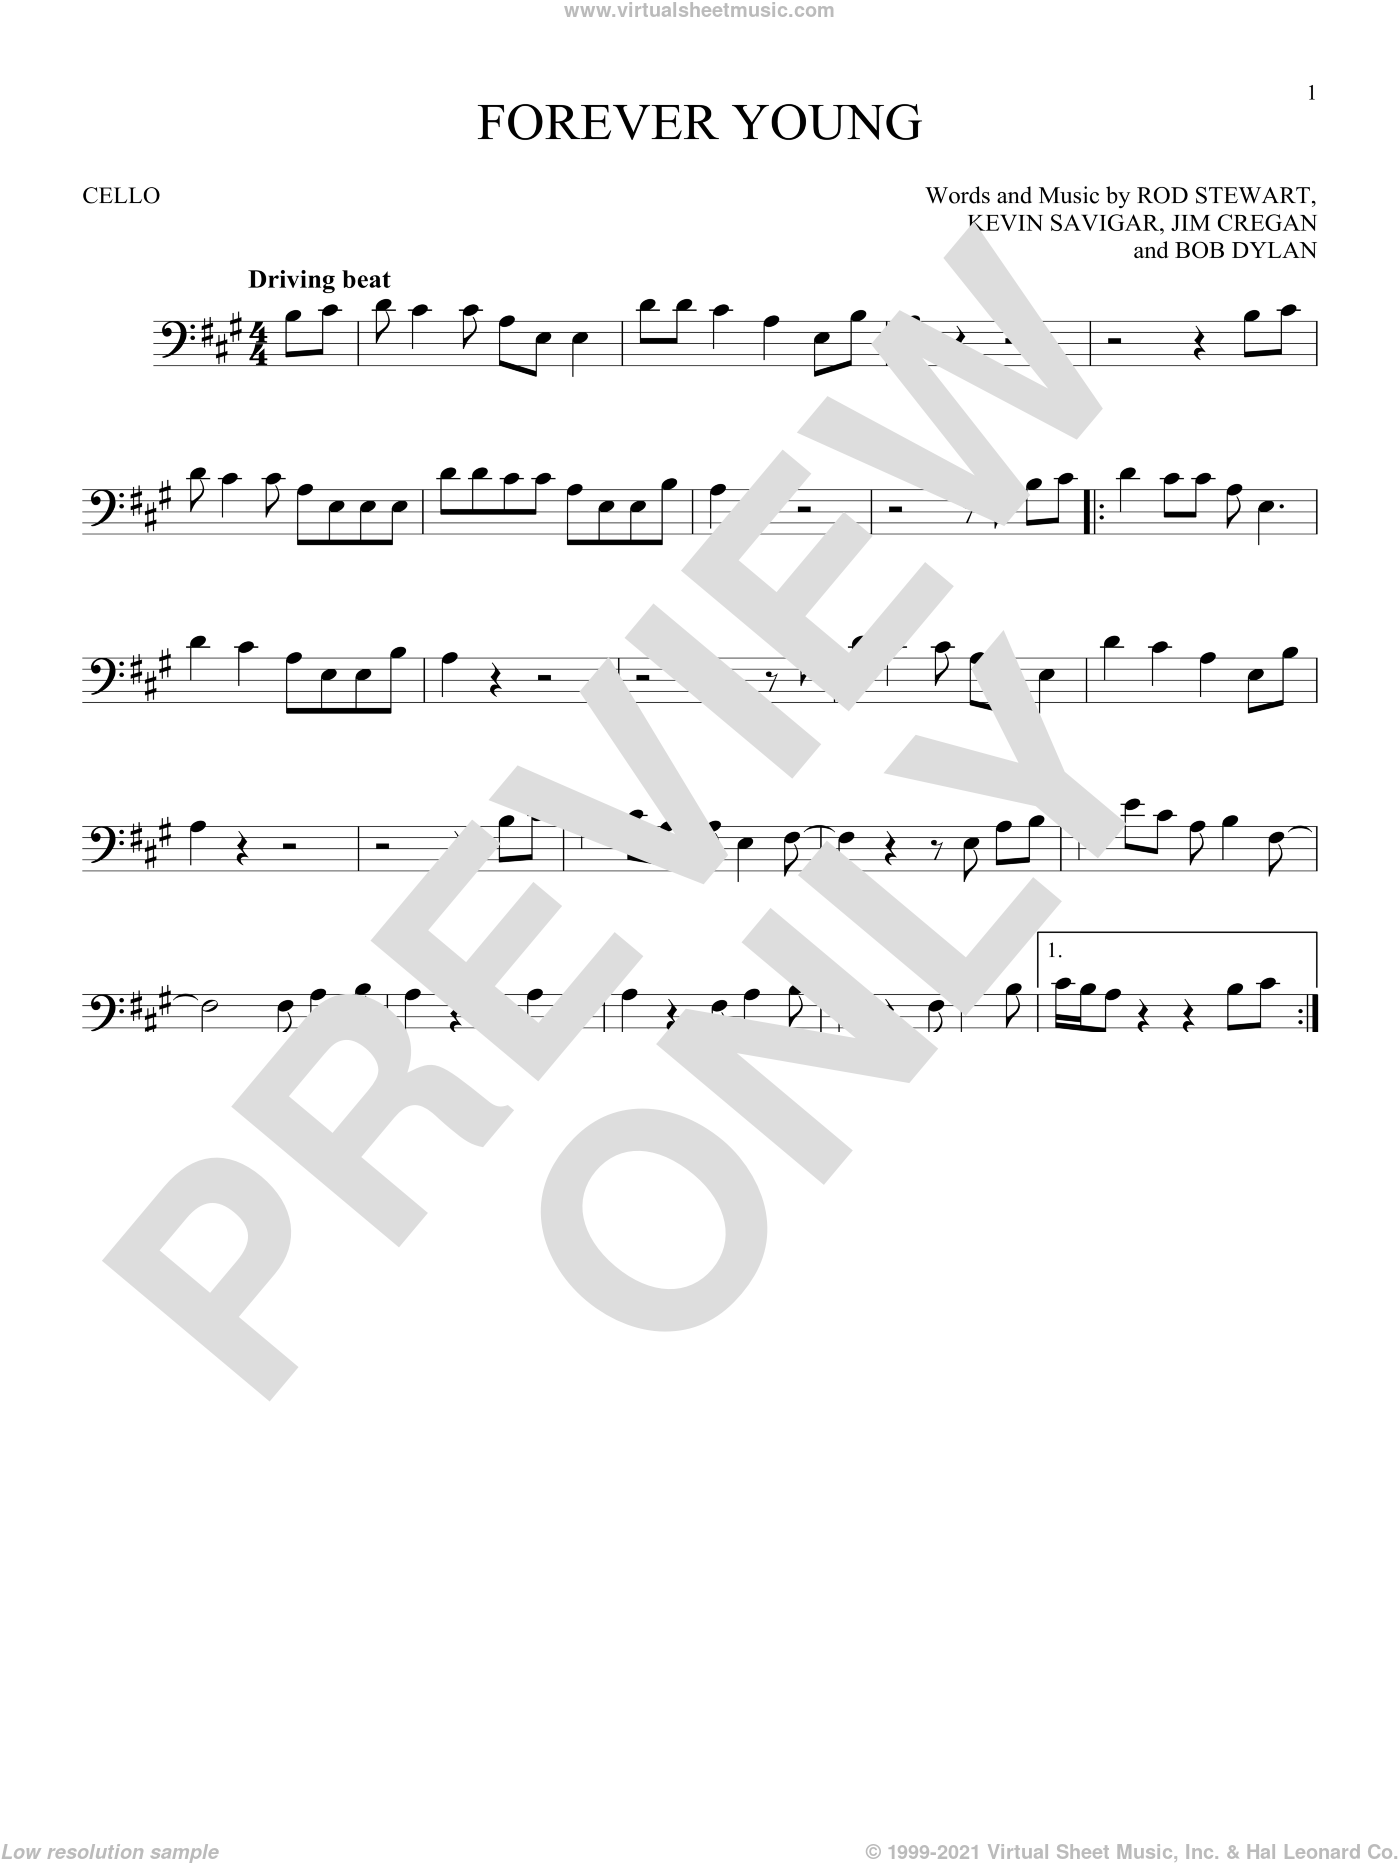 Forever Young sheet music for cello solo by Rod Stewart, Bob Dylan, Jim Cregan and Kevin Savigar, intermediate skill level